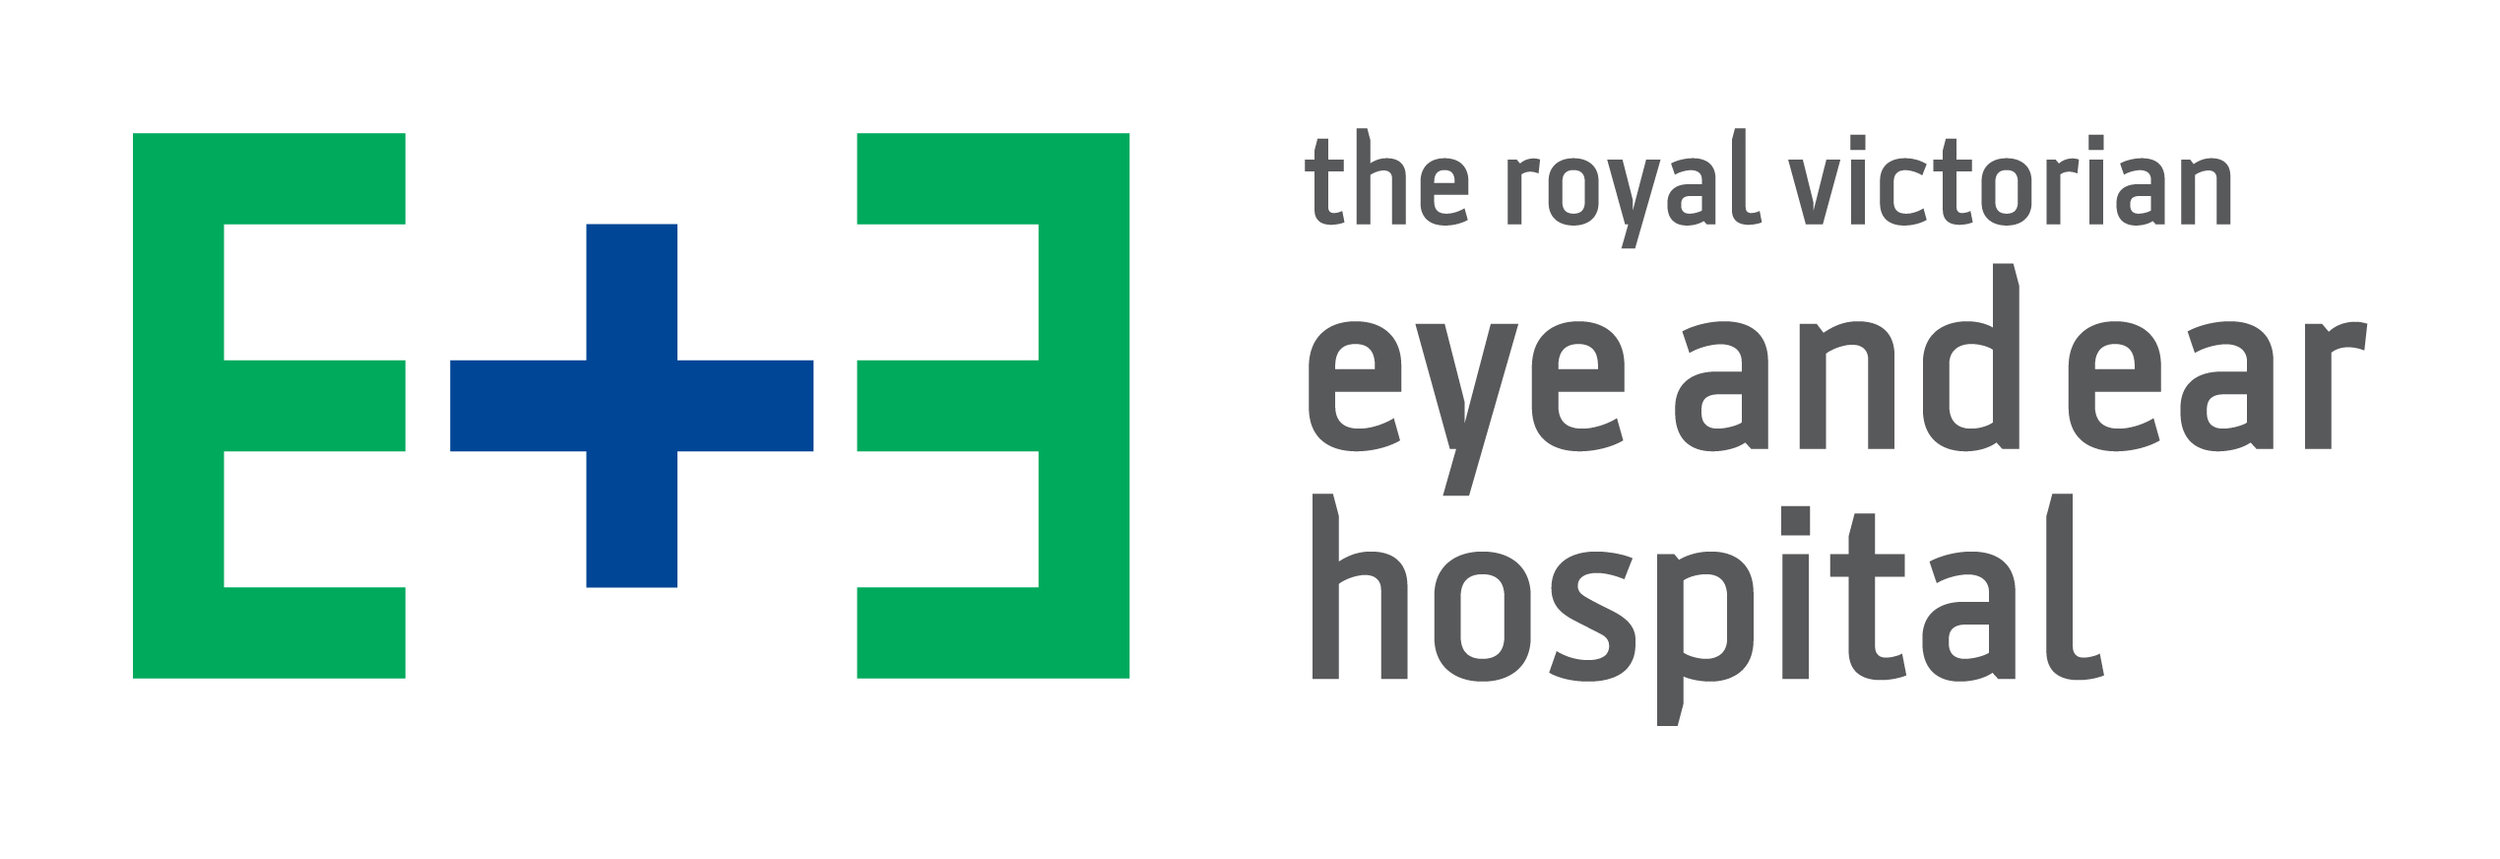 Royal Victorian Eye and Ear  Hospital.jpg